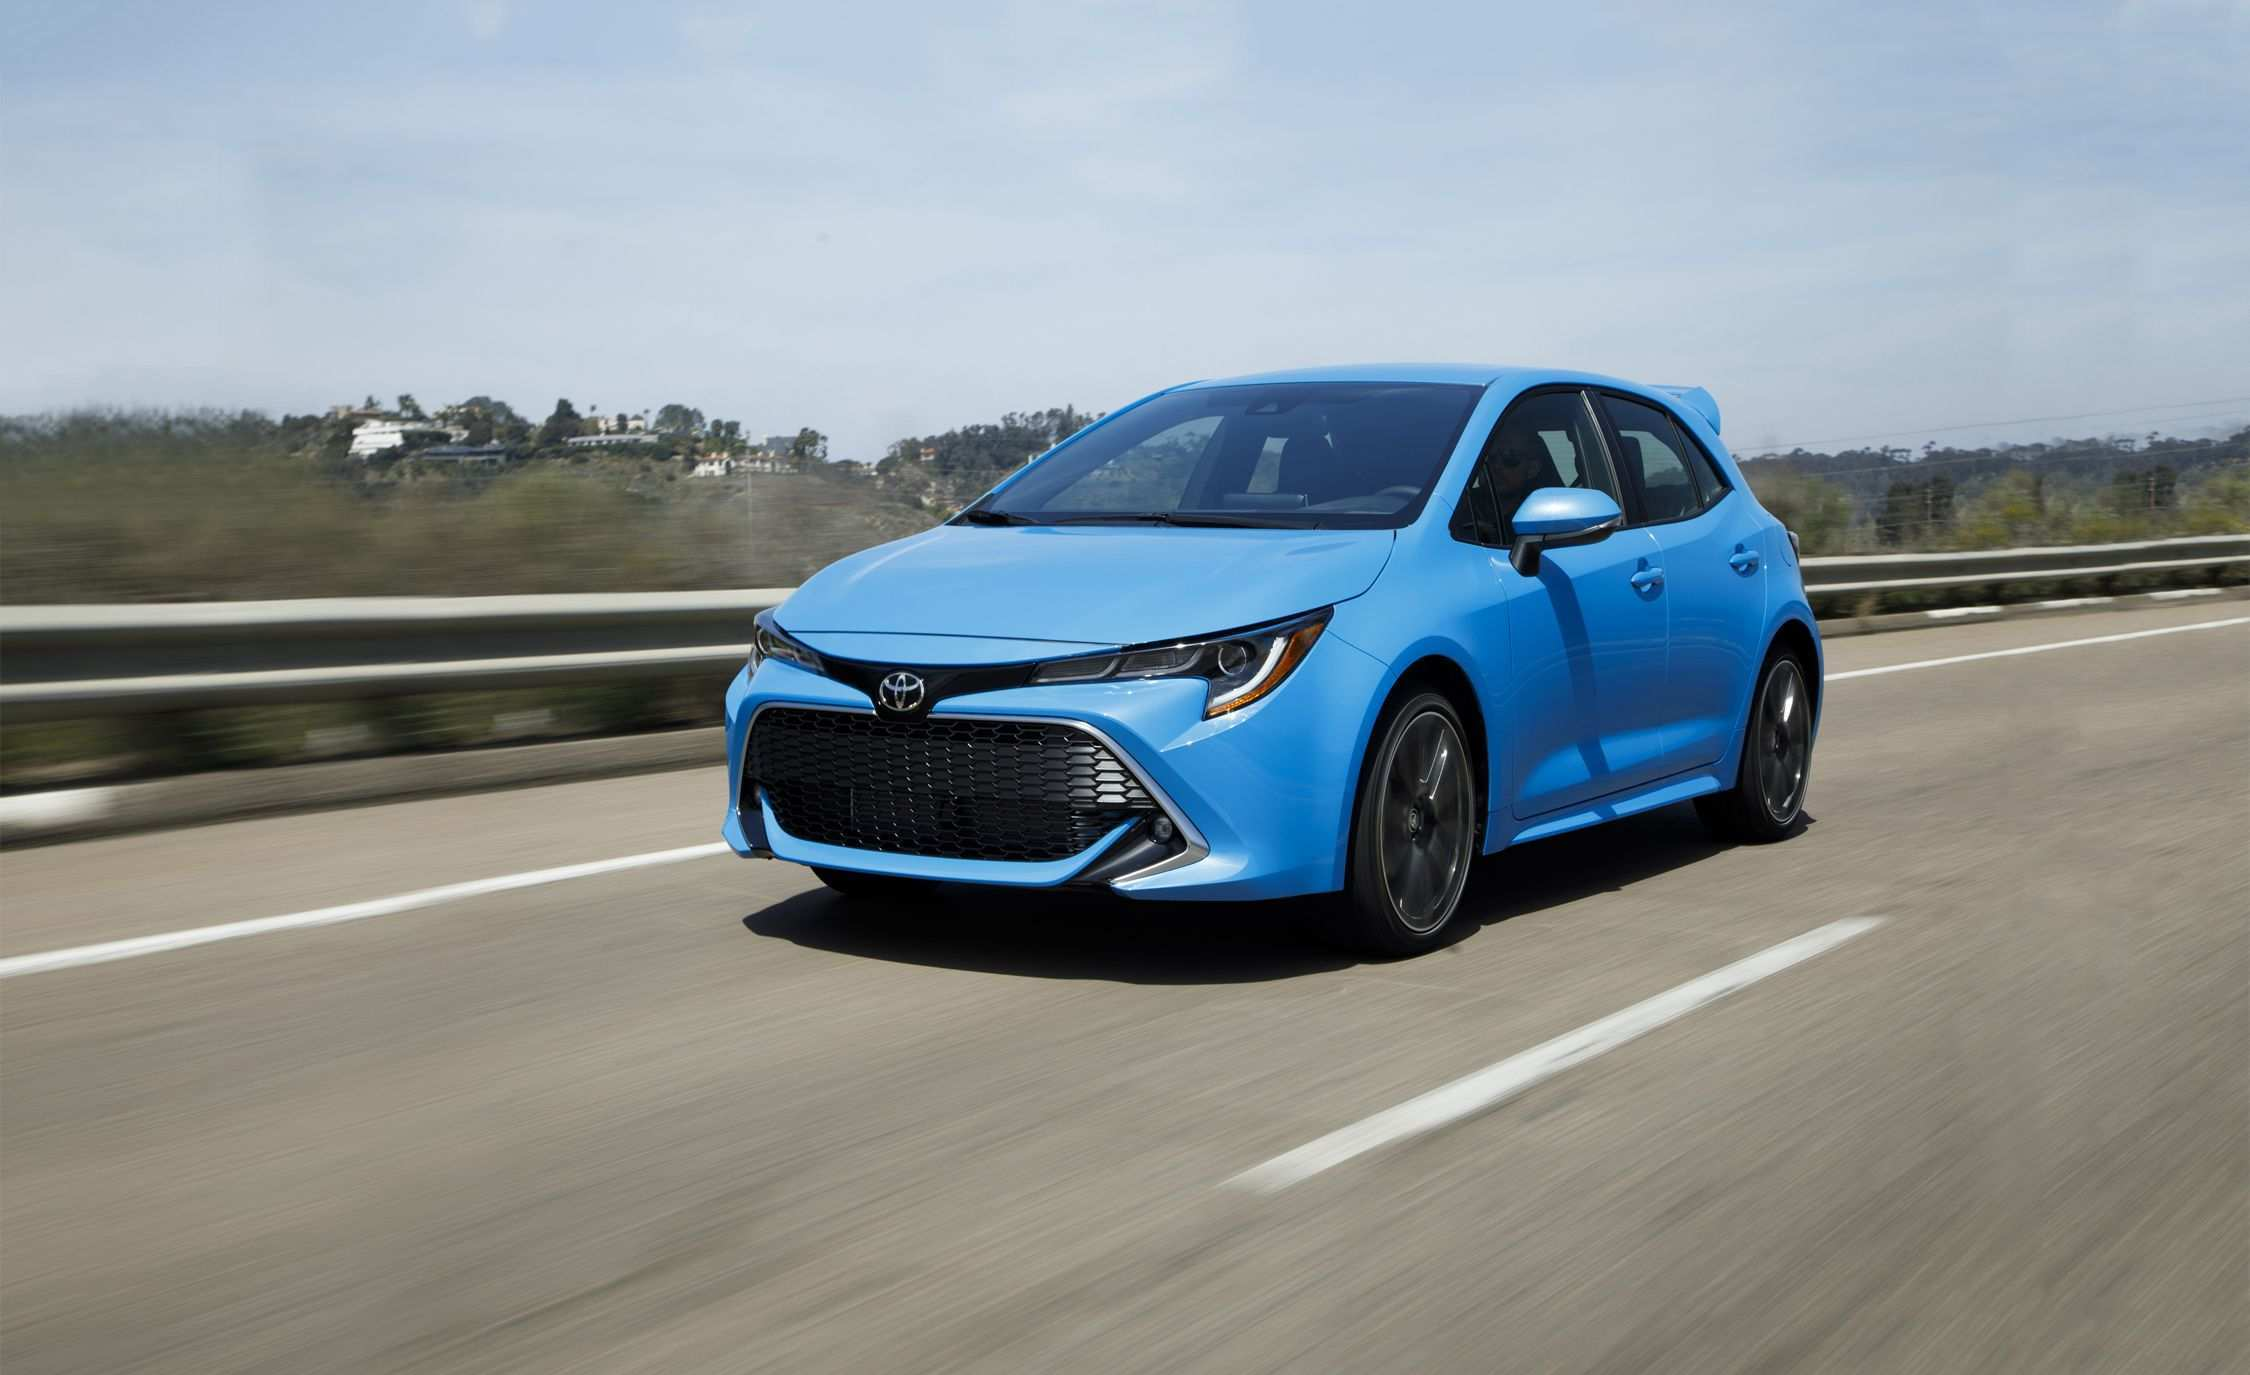 44 The New 2019 Corolla Hatchback Vs Mazda 3 Specs Spesification for New 2019 Corolla Hatchback Vs Mazda 3 Specs